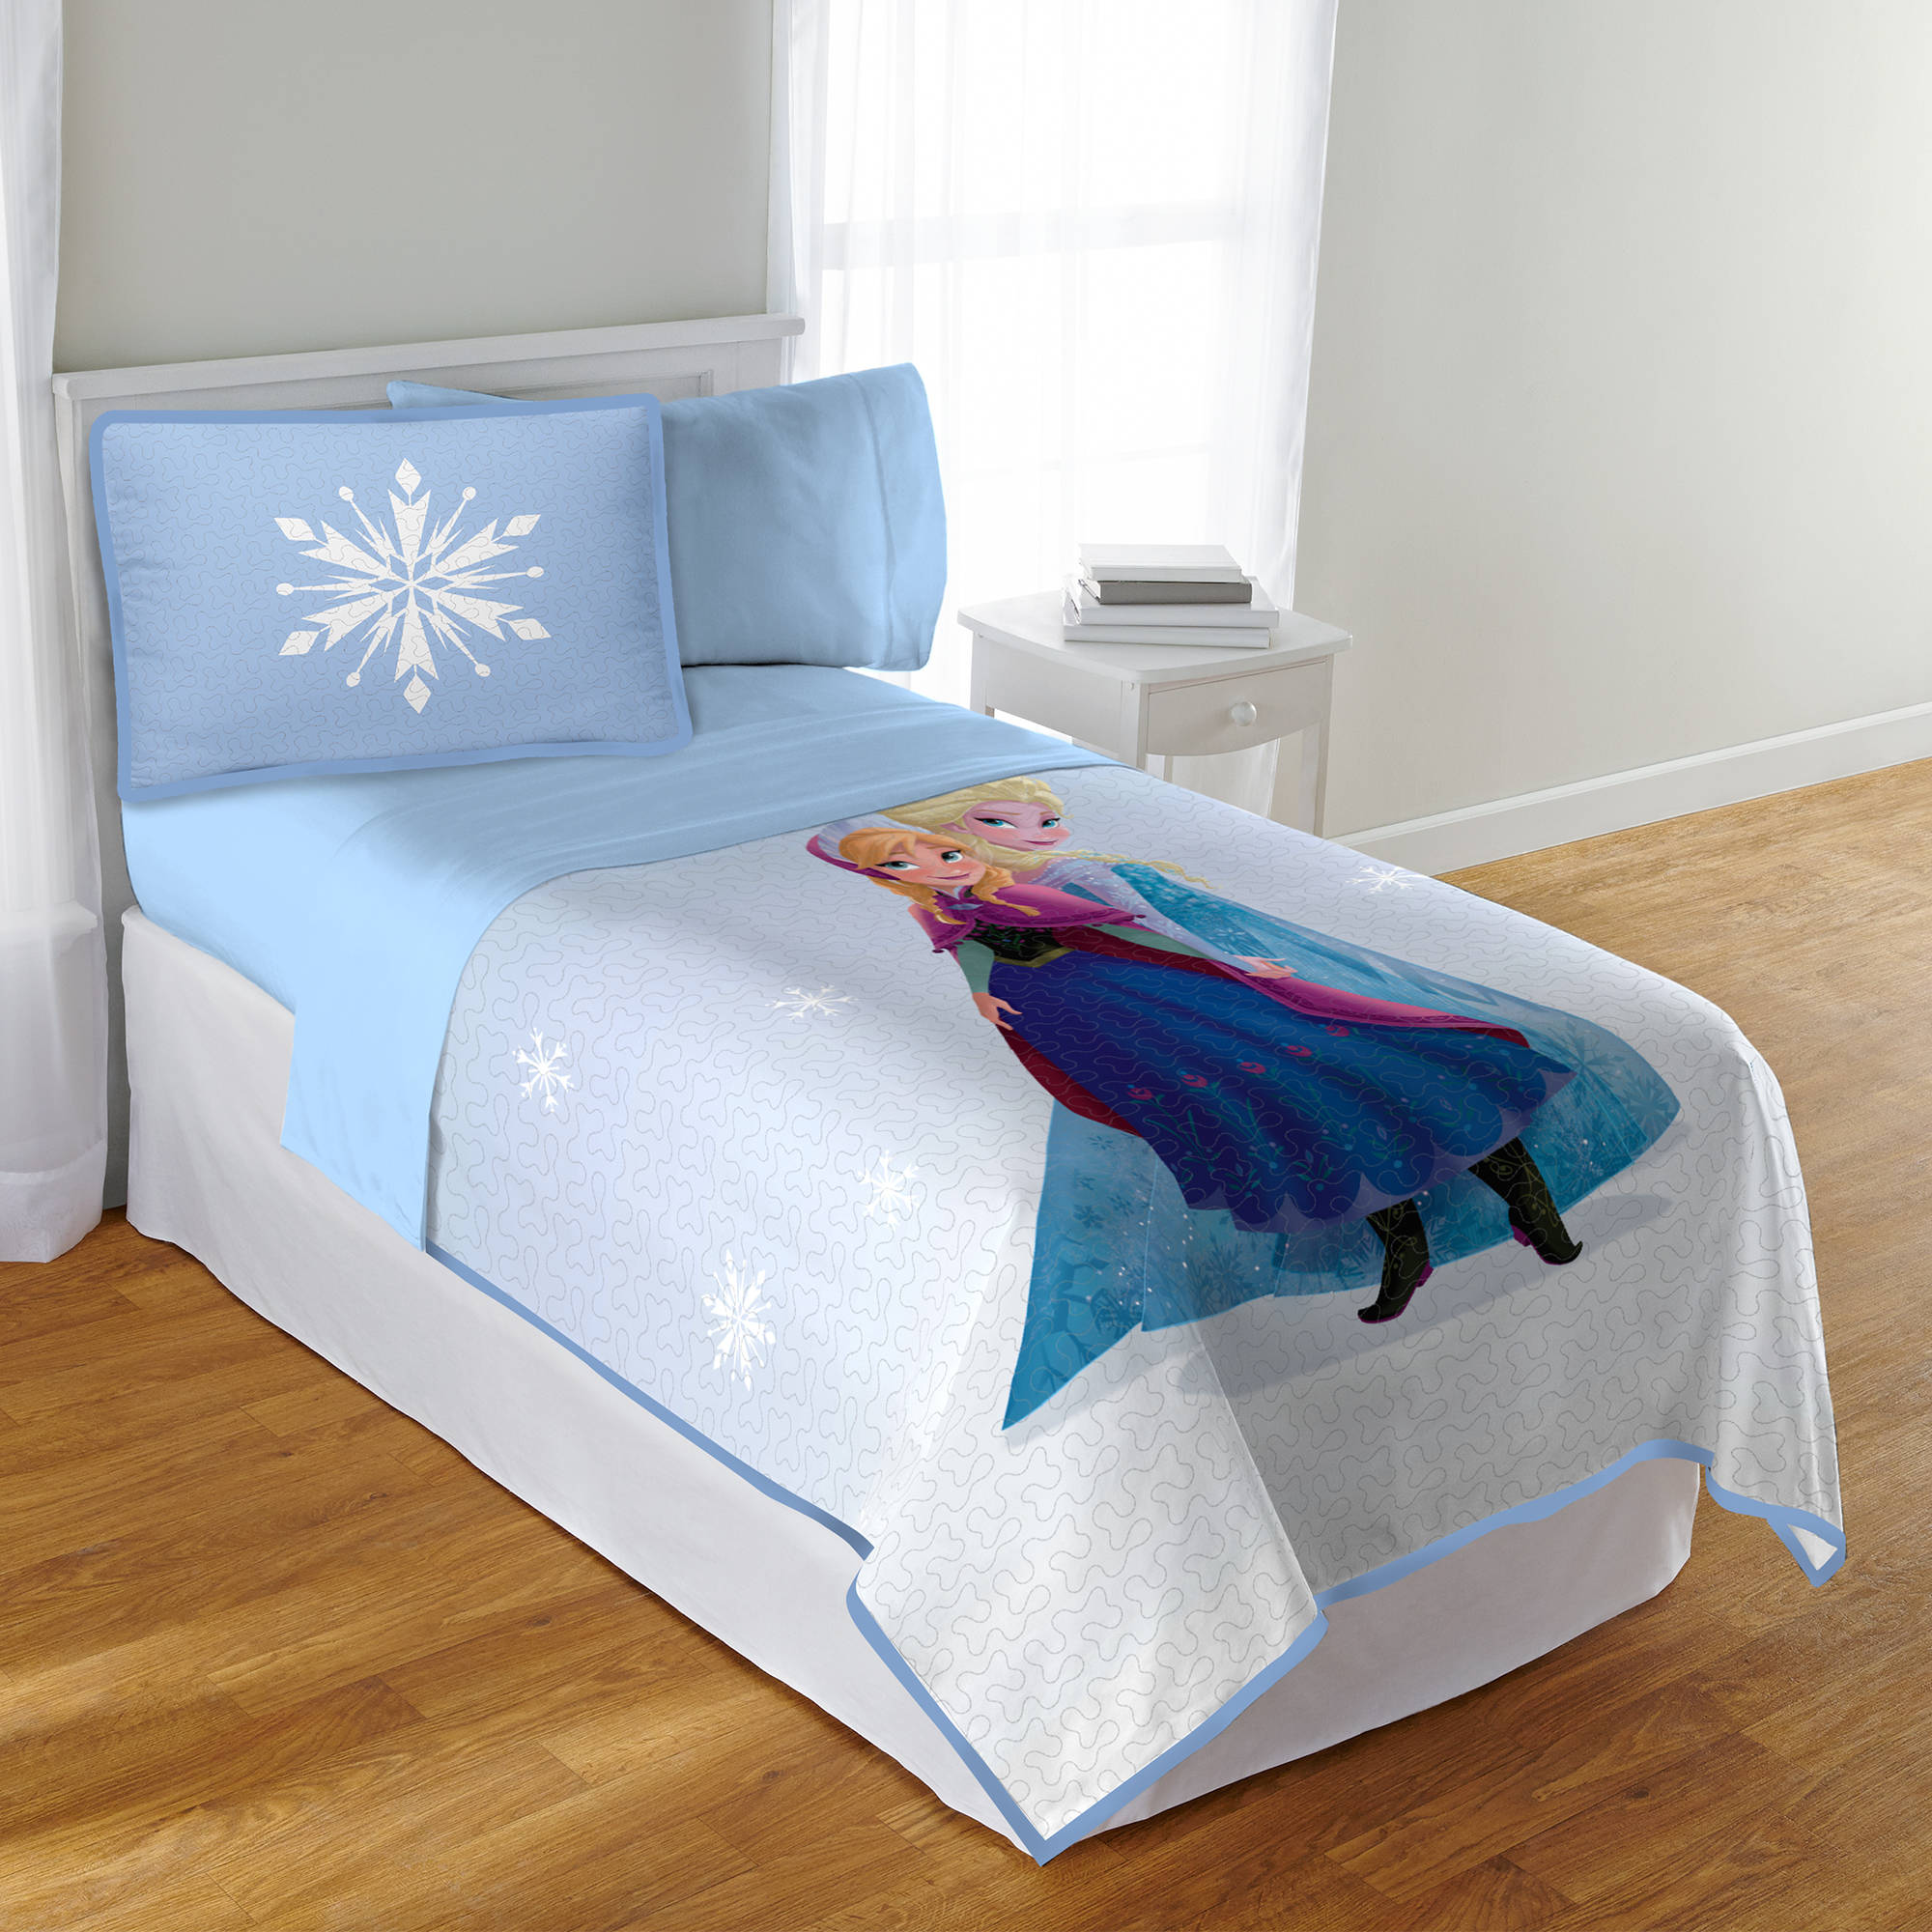 Disney's Frozen Frozen No More Twin/Full Quilt with Sham